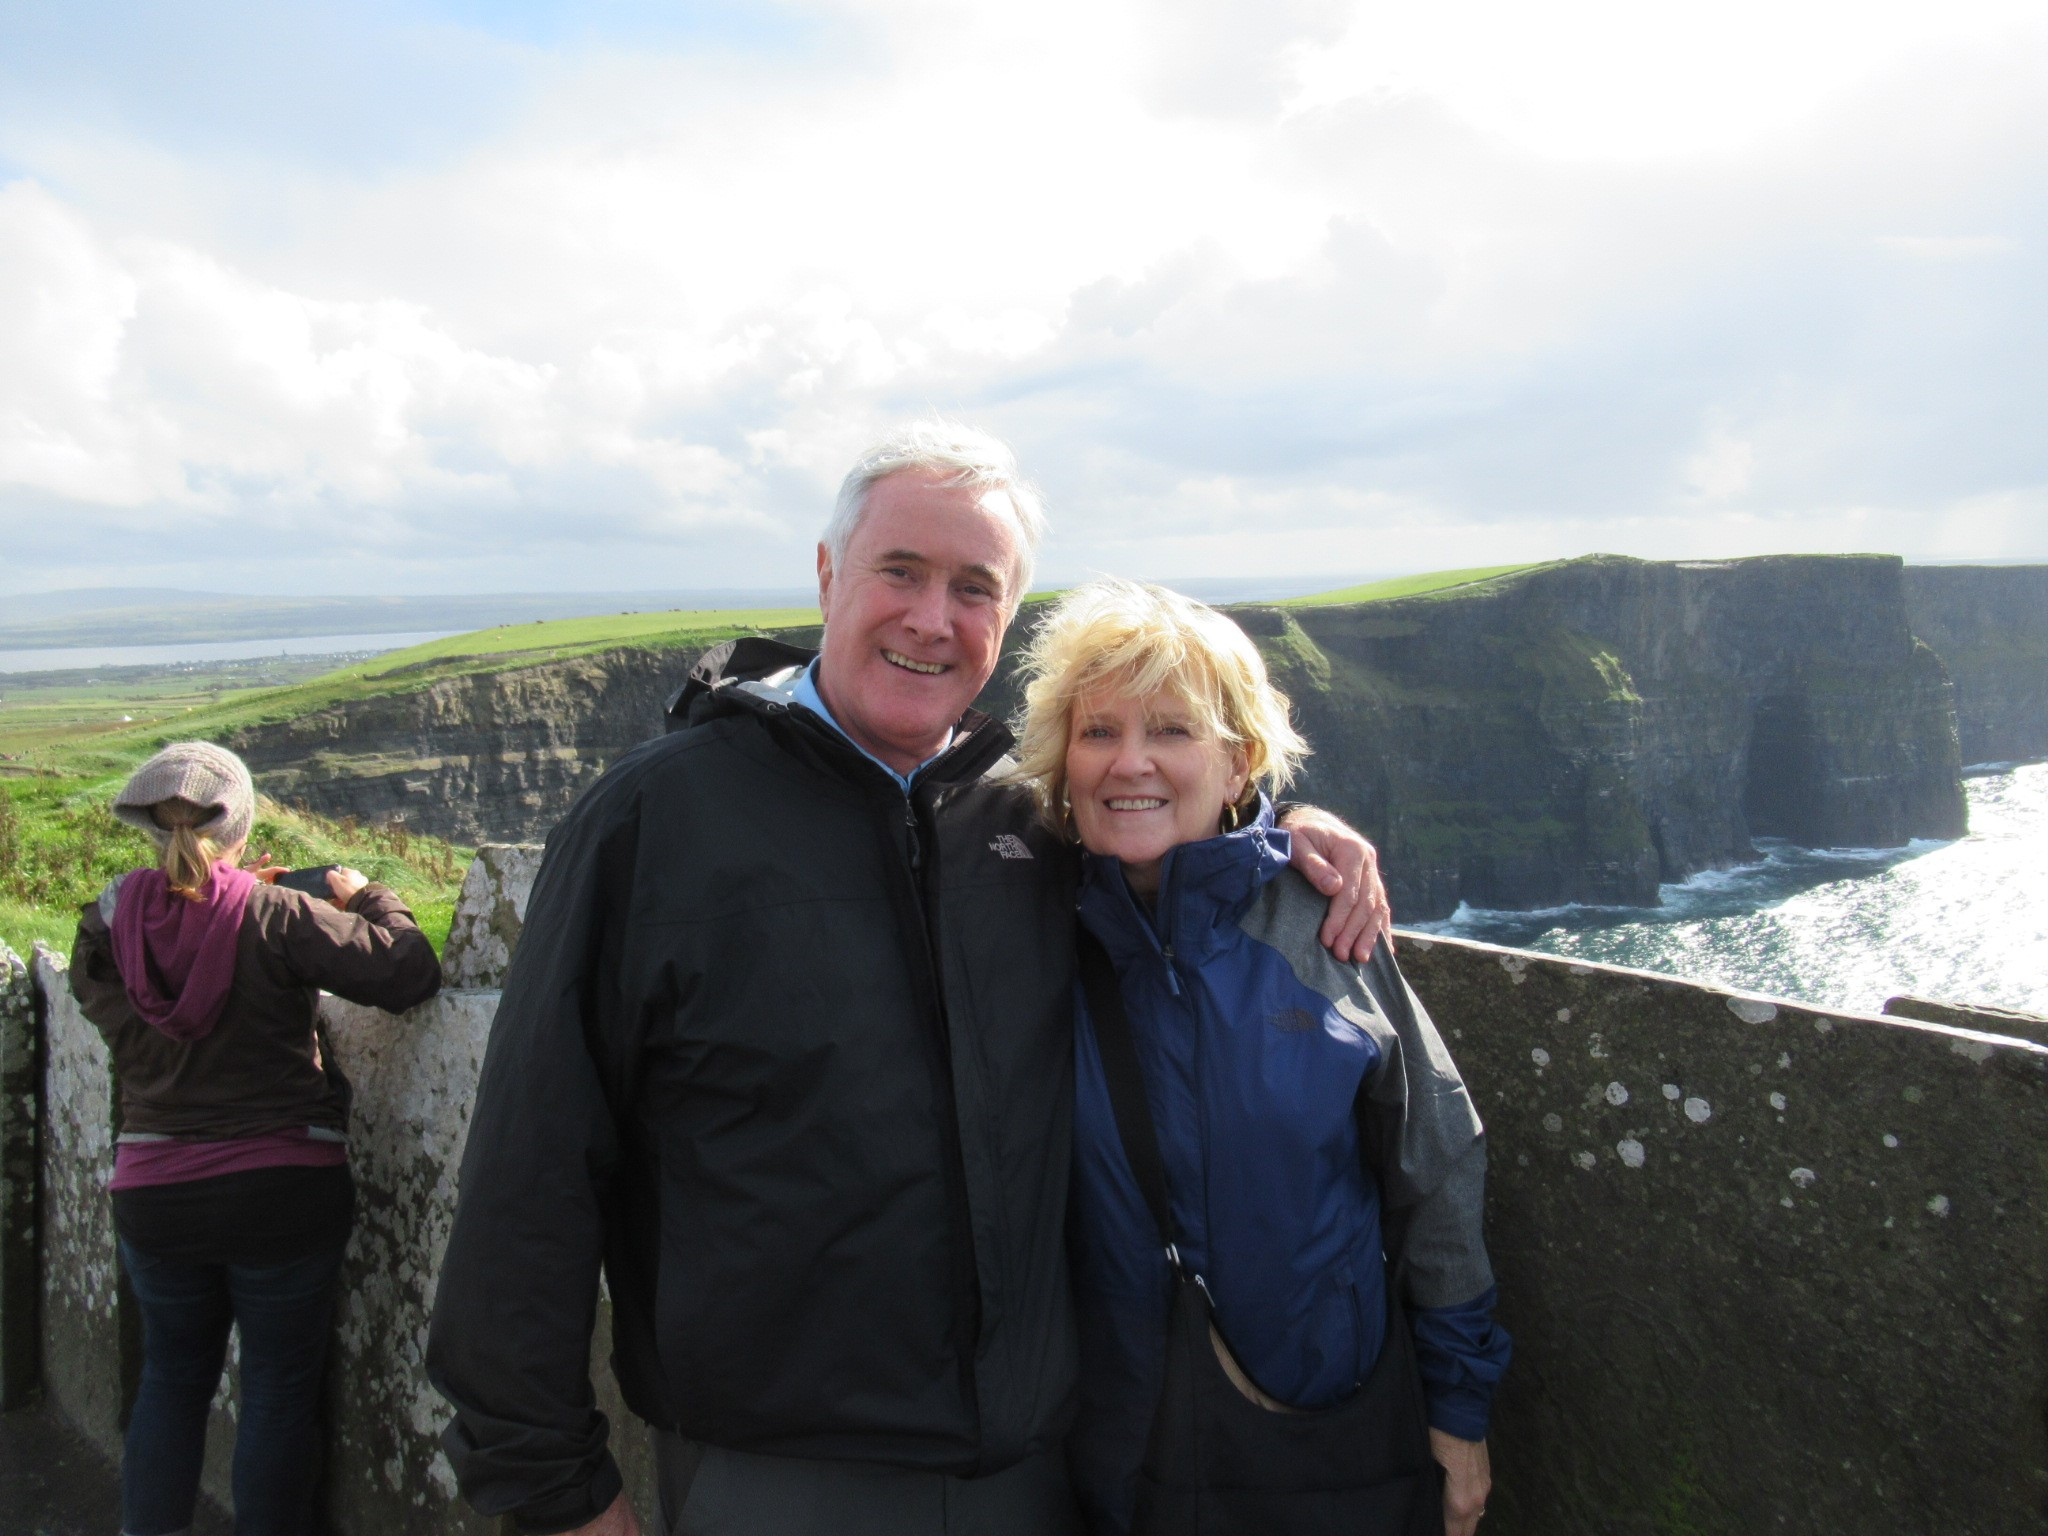 Coach trip to ireland - Initially we attempted to plan our Ireland trip ourselves. However, after several frustrating and overwhelming starts we turned to Karen. She quickly reassured us with her knowledge and experience.. She understood our interests and concerns and despite a tight timeline she delivered a travel package that resulted in a wonderful and memorable experience!! Thank you, Karen for walking us through our likes and dislikes and creating an experience that will live with us forever!! Peg P and Tim R - Lilydale MN. Traveled Sept. 2017